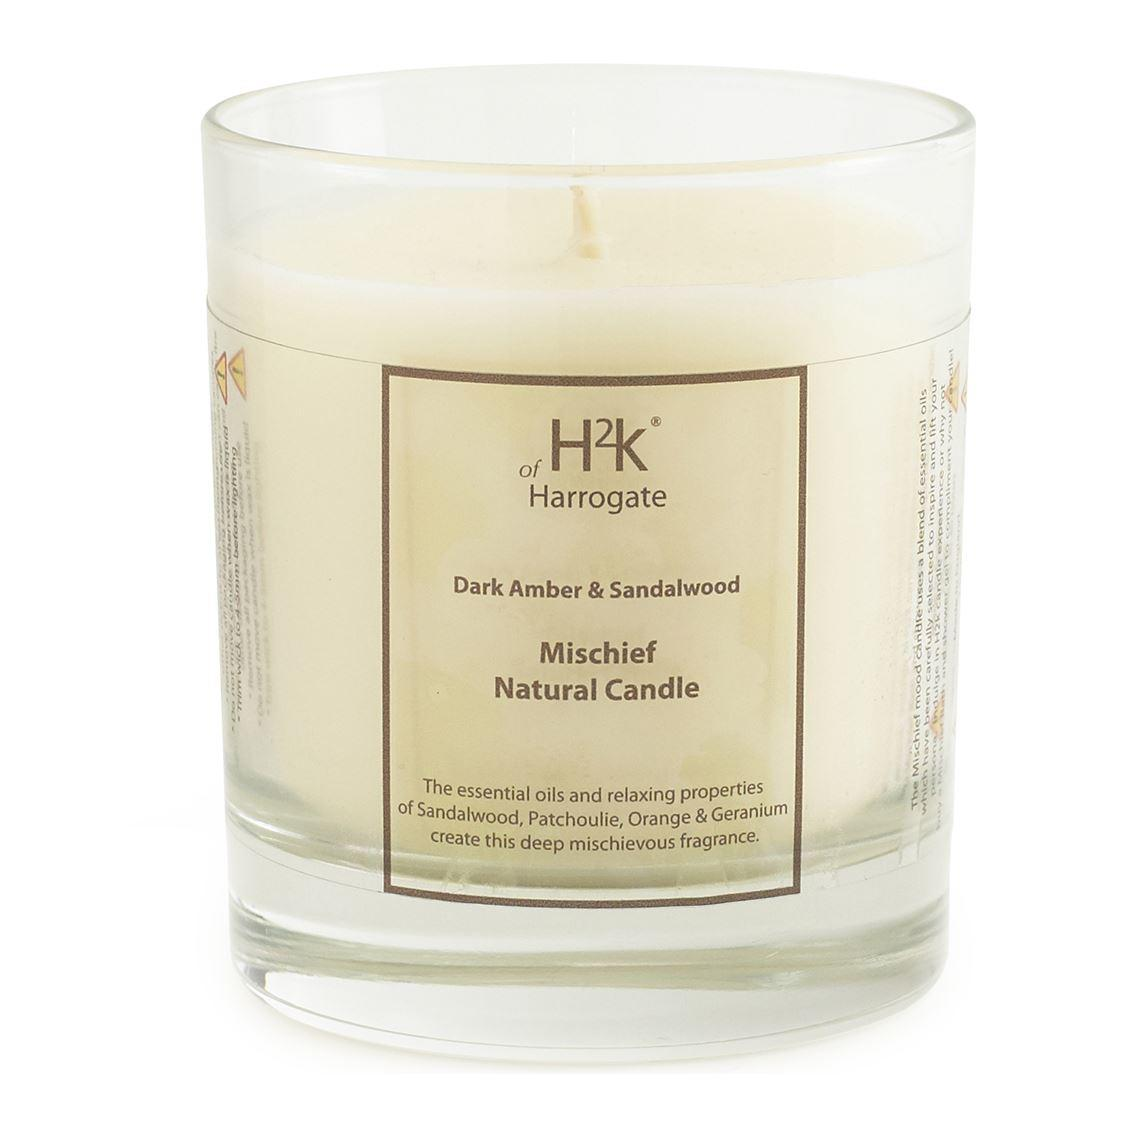 H2k of Harrogate Pure Indulgence Sandalwood and Dark Amber Candle